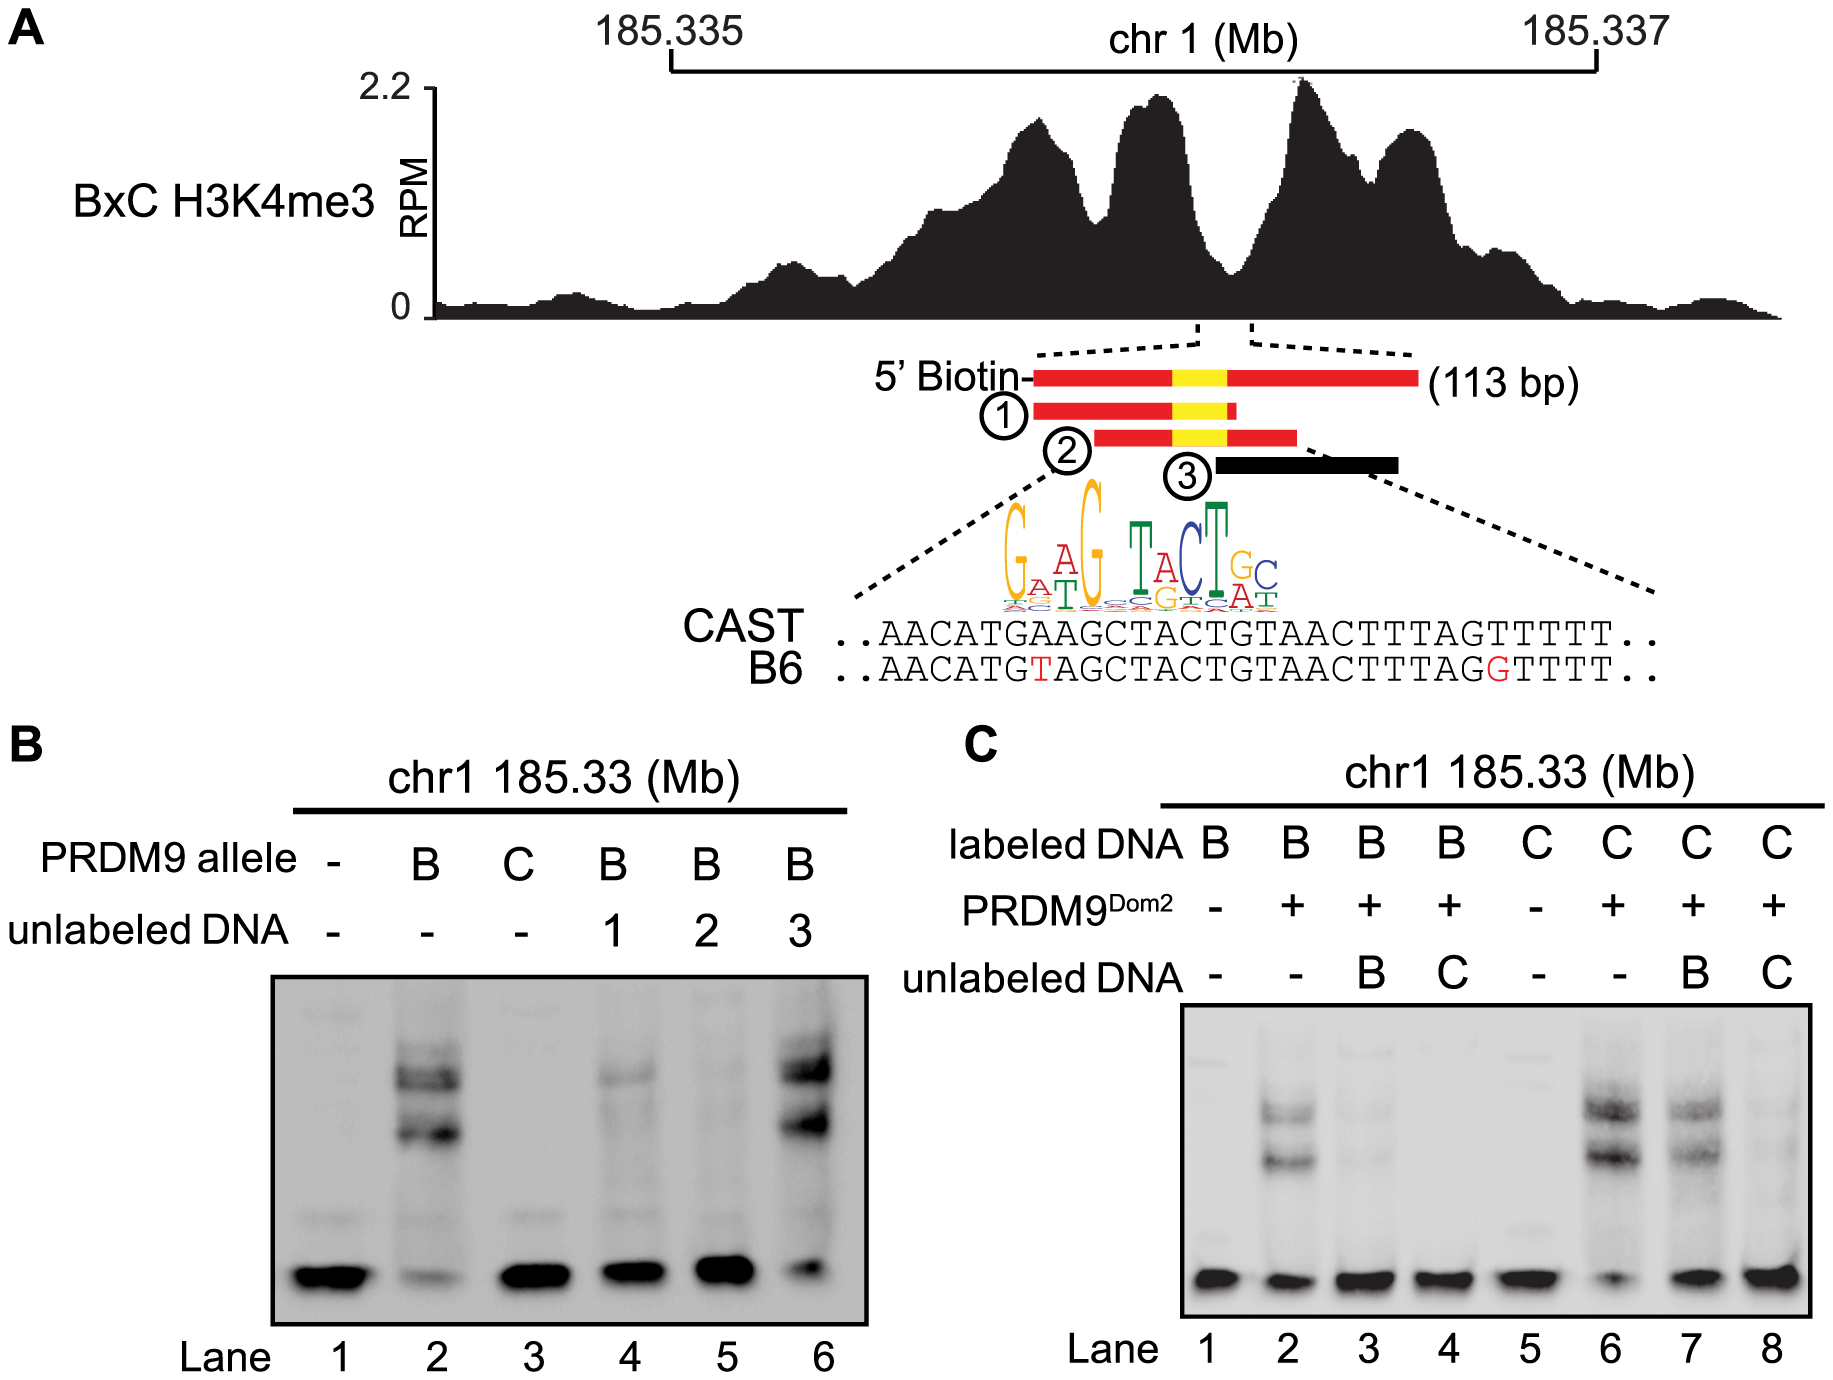 Hotspot haplotype influences PRDM9 binding.